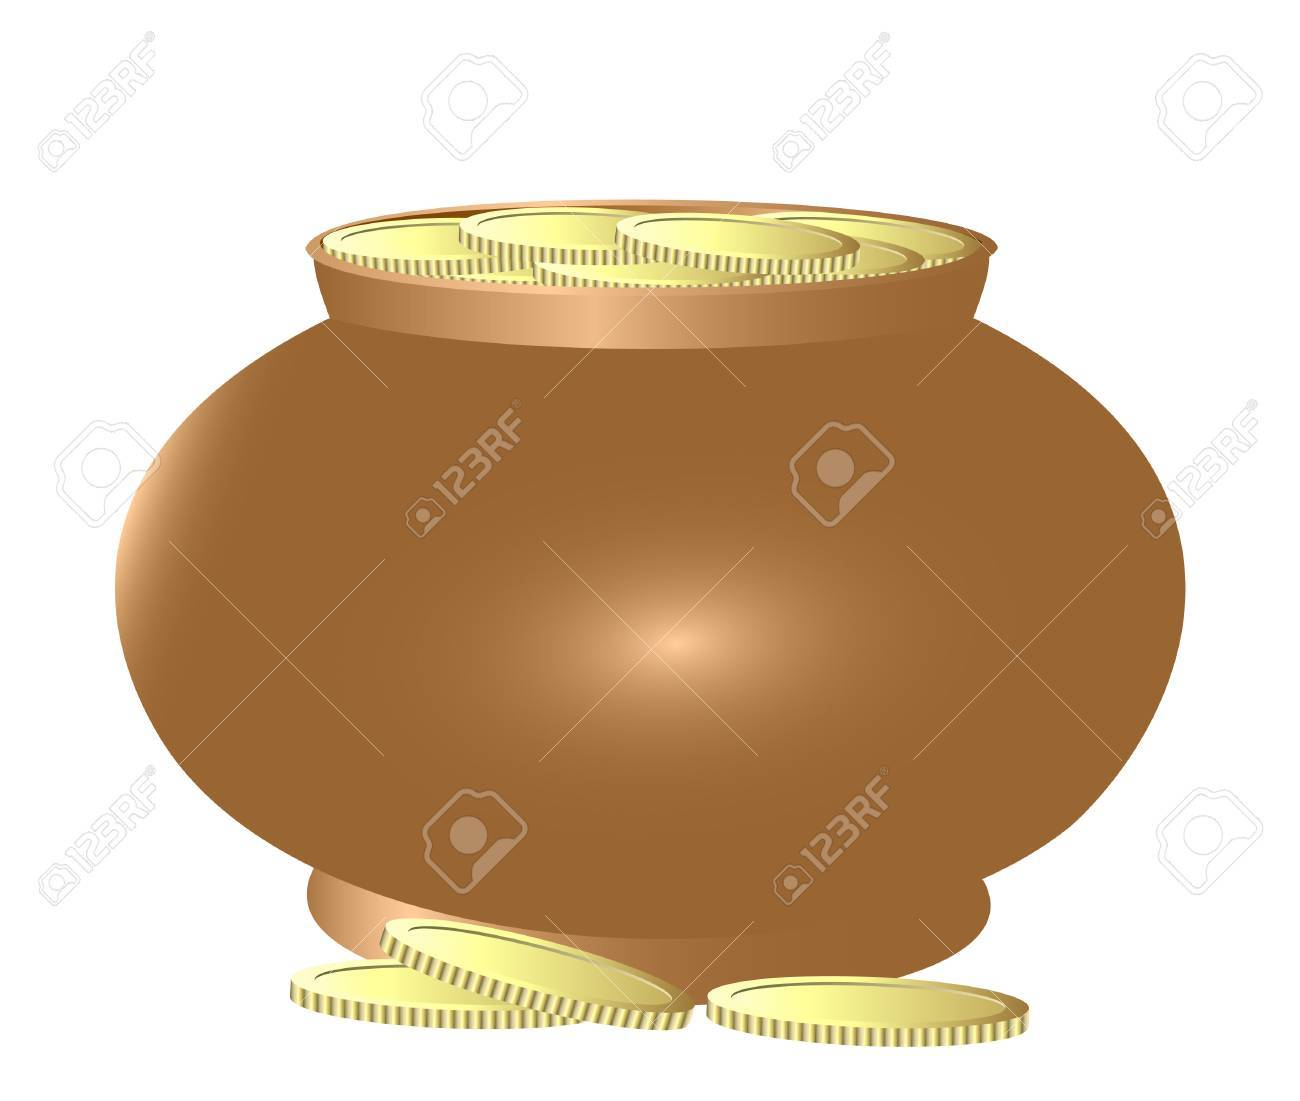 Copper pot filled with gold coins. A composition on a white background. Stock Vector - 8780447